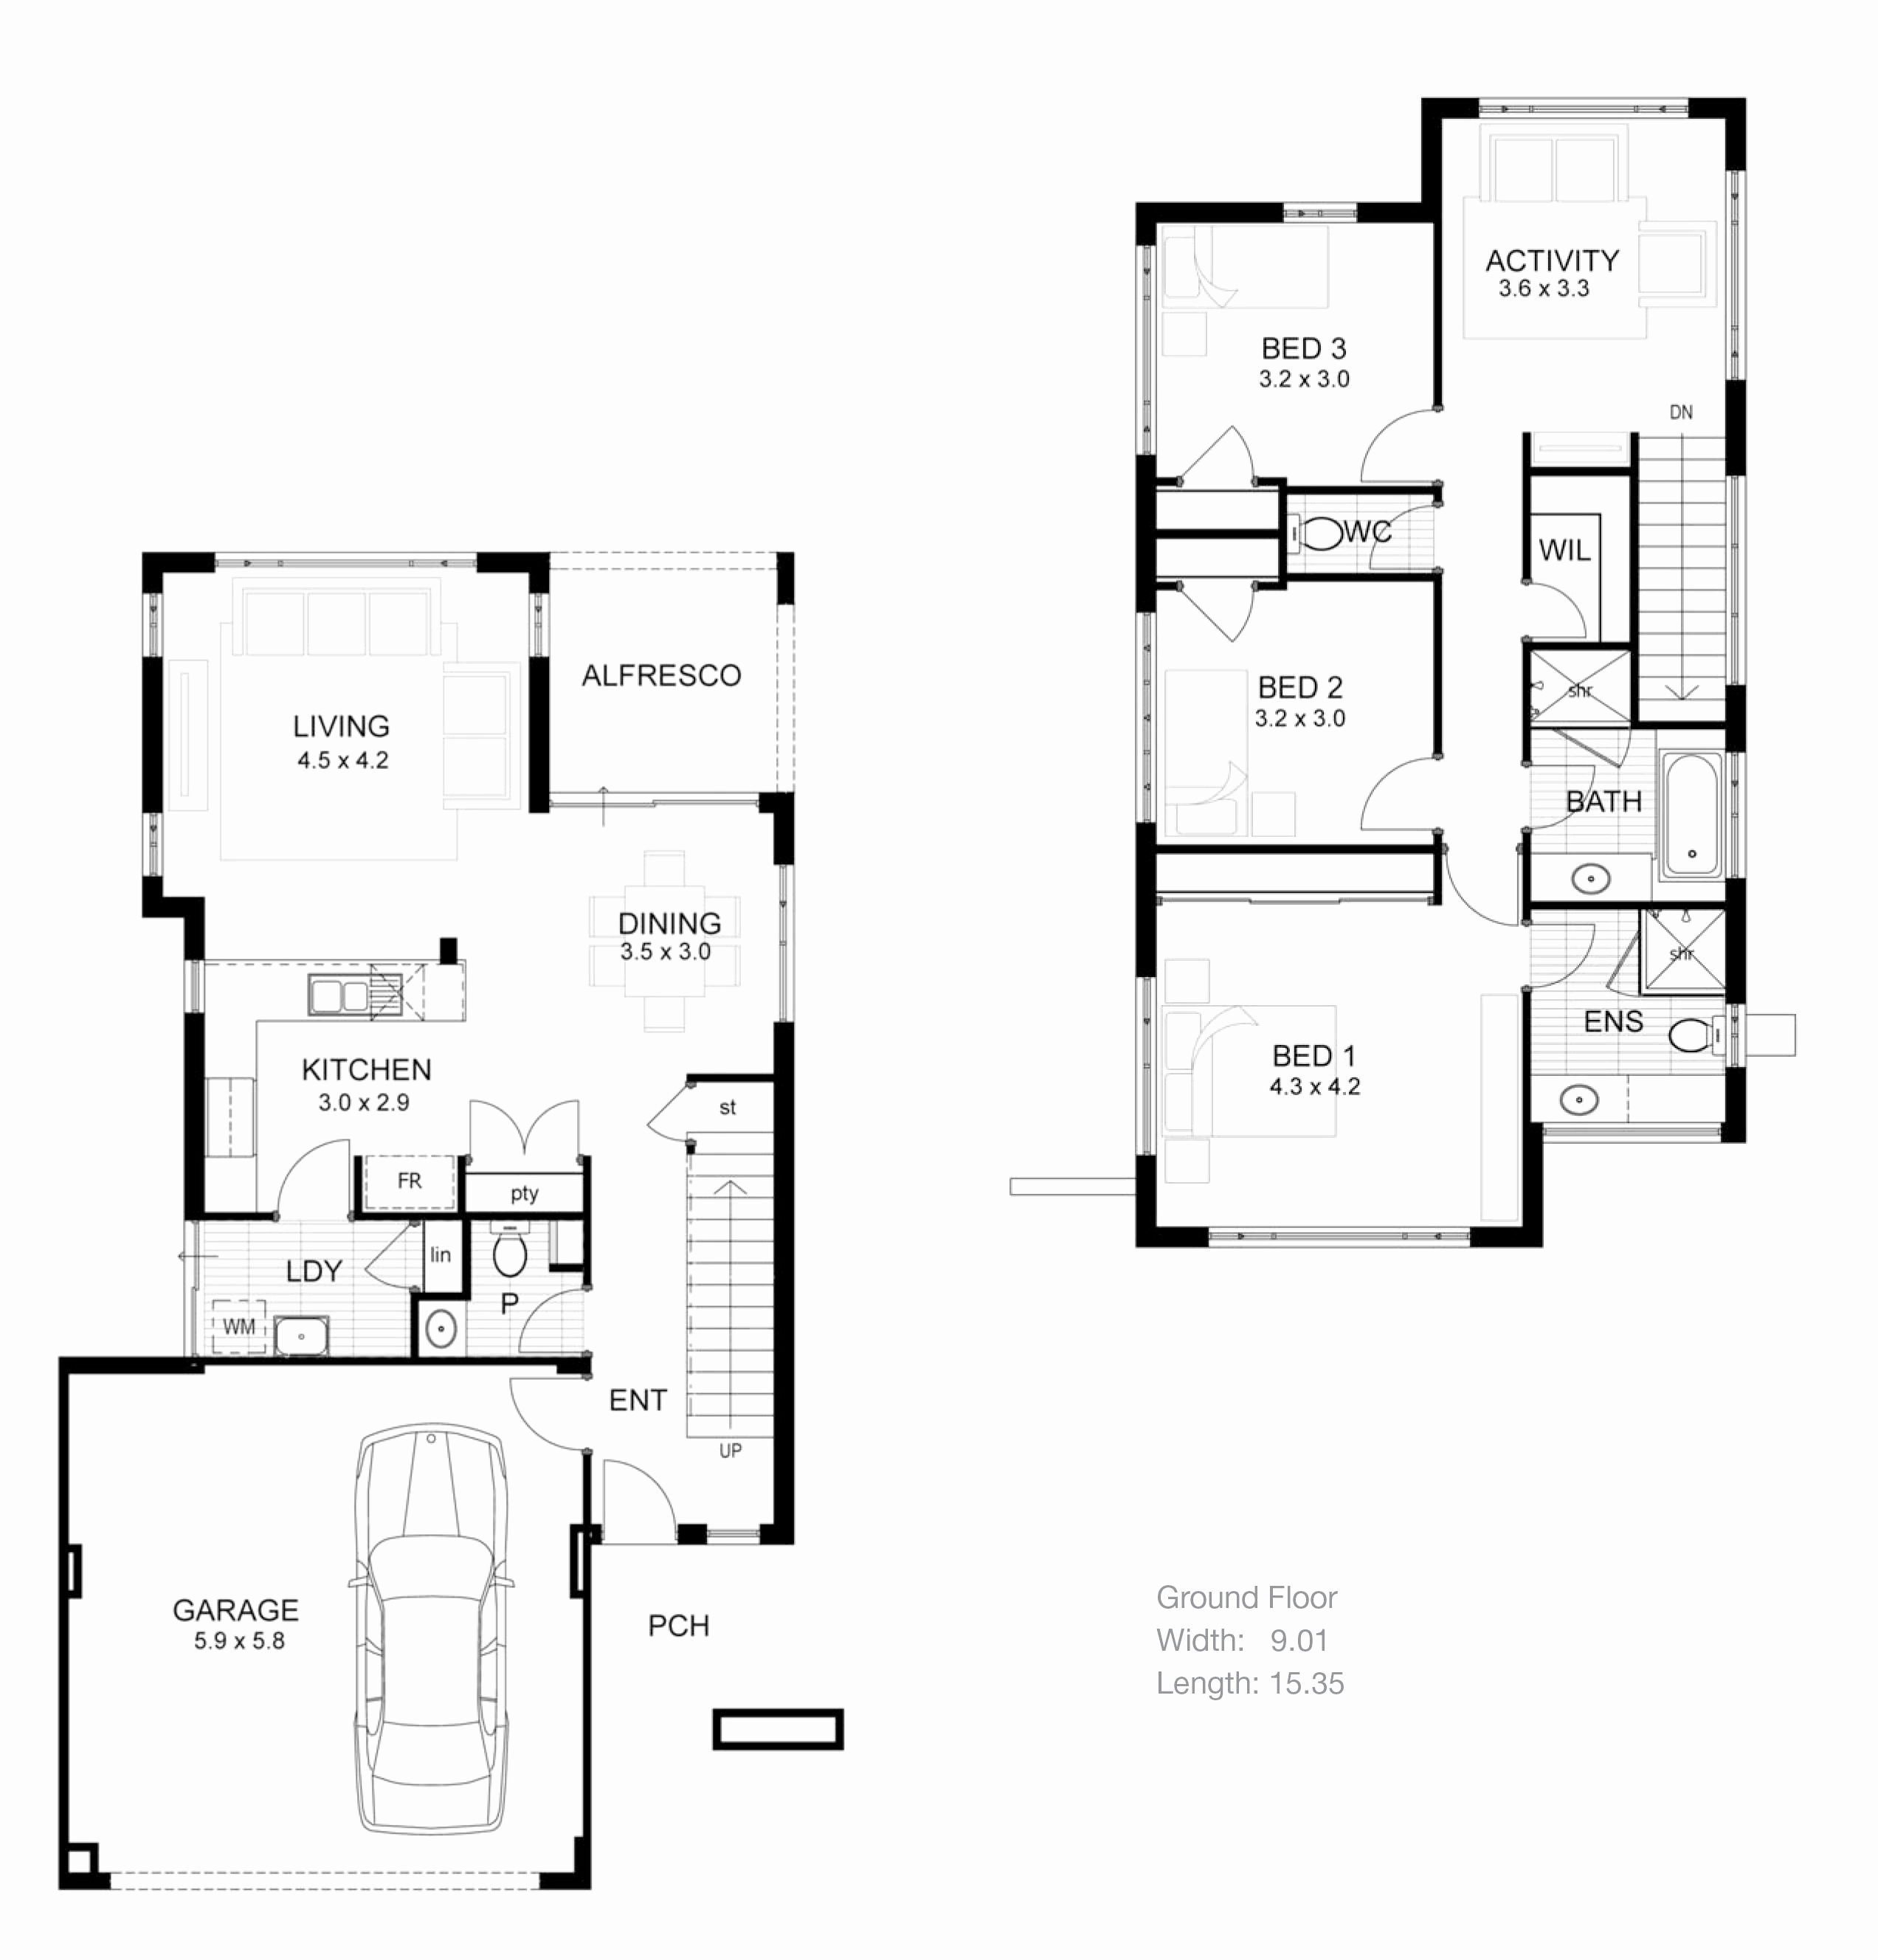 House Plans New Small Bedroom Floor Modern Retirement Tiny intended for 11 Some of the Coolest Ideas How to Make Modern 2 Bedroom House Plans